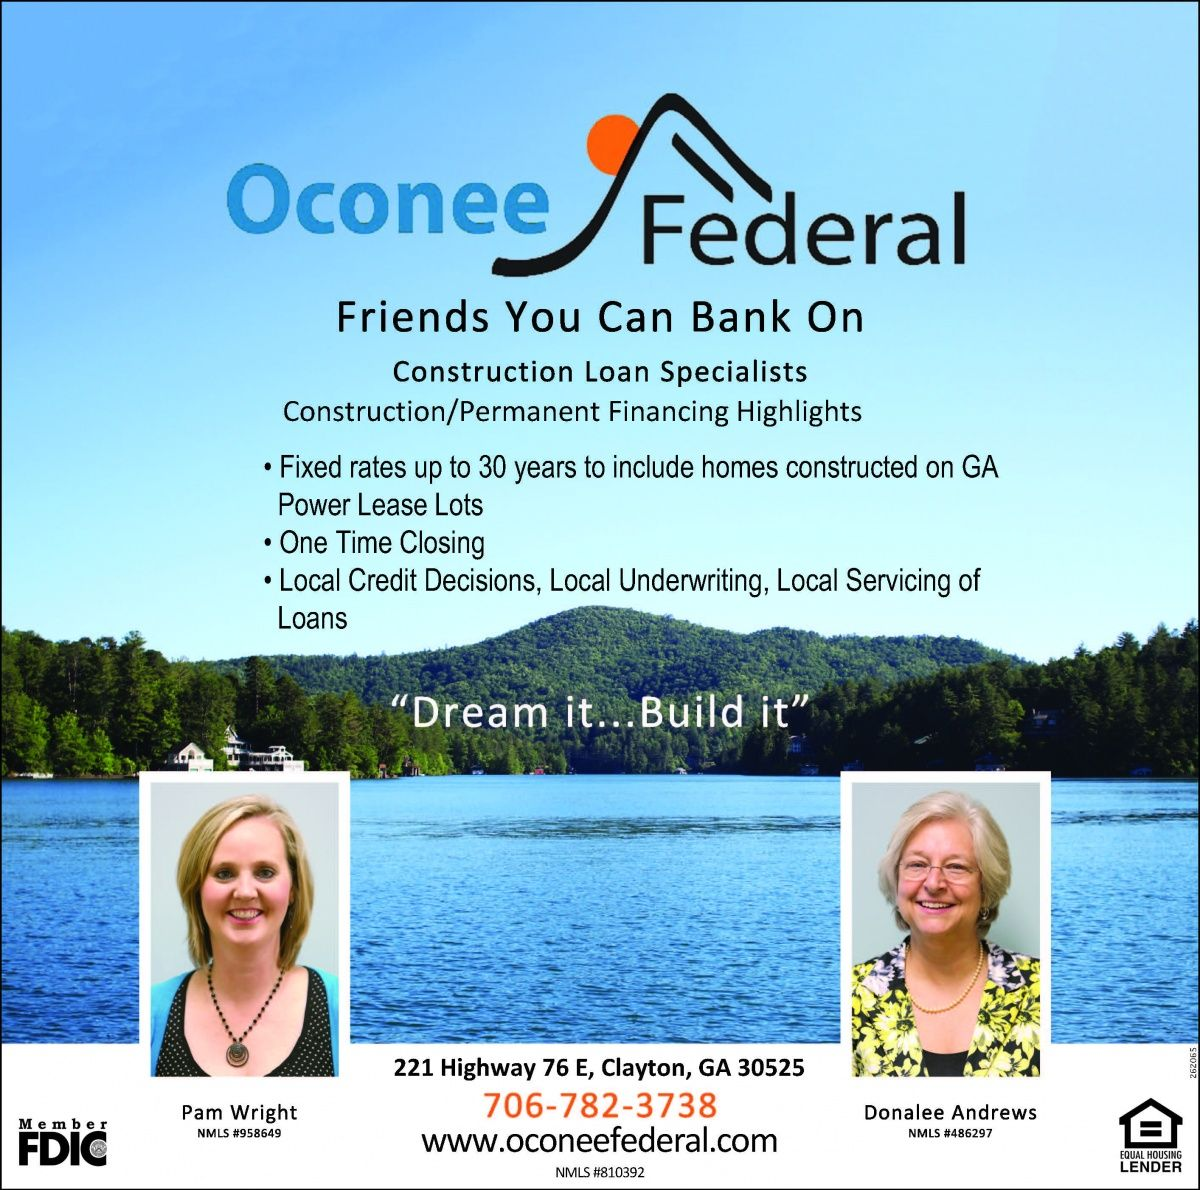 Pam Wright Donalee Andrews Friends You Can Bank On Construction